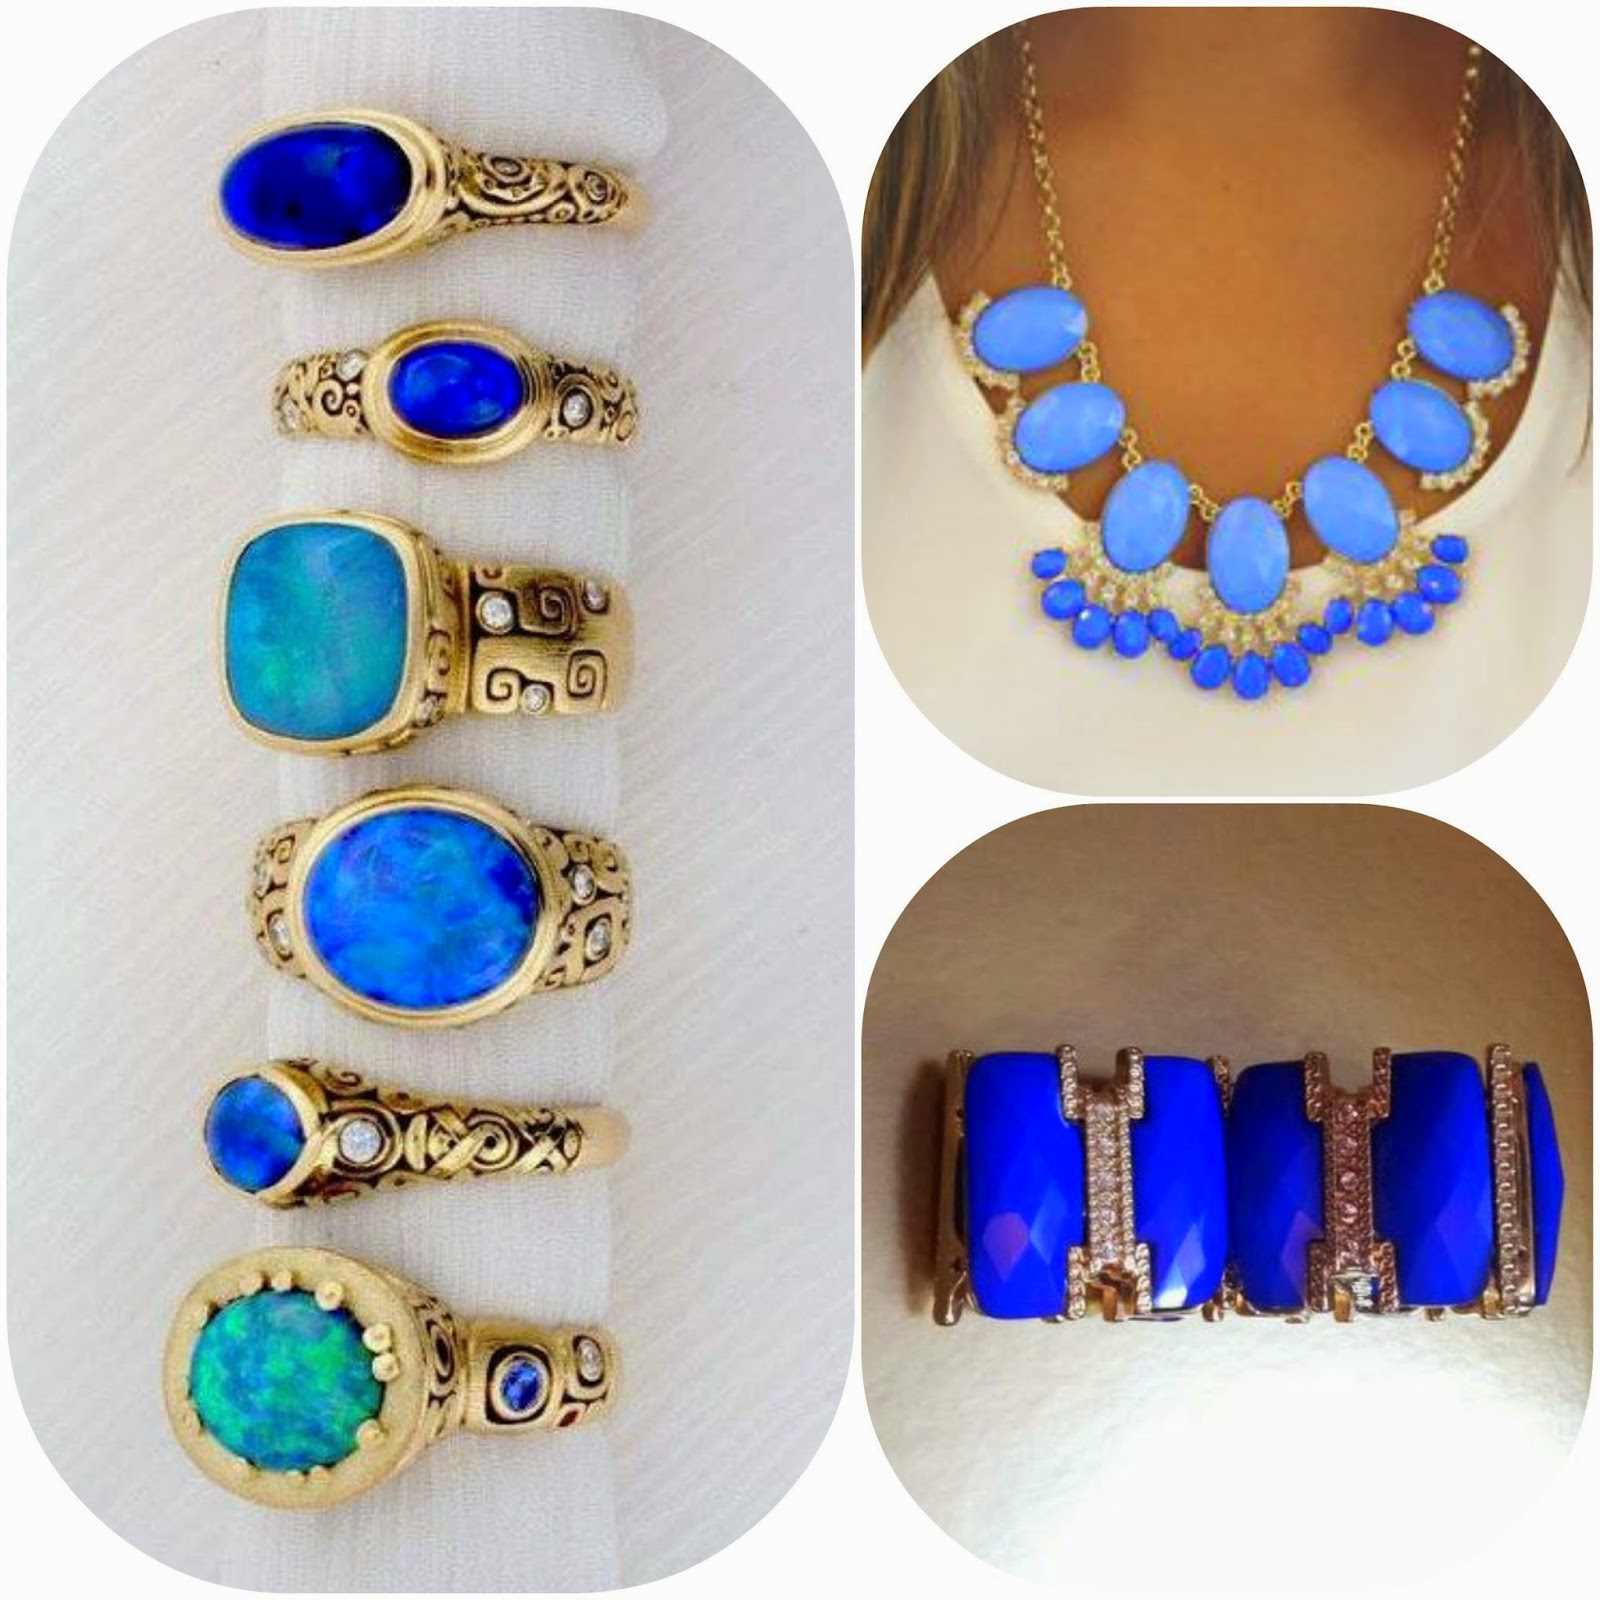 How to wear blue jewellery, how to style blue statement jewellery, blue fashion style